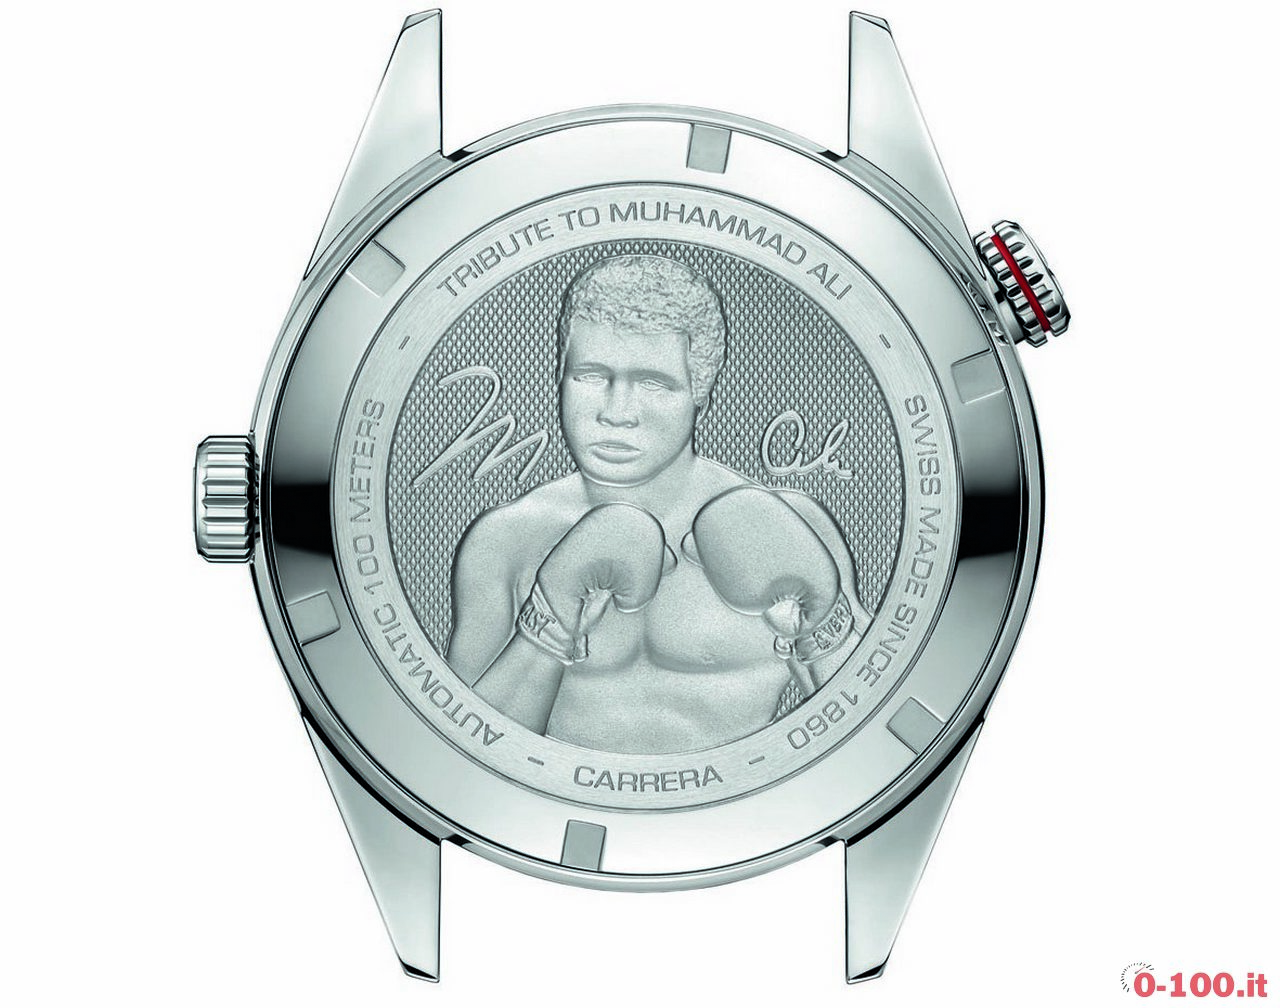 tag-heuer-carrera-calibre-5-ring-master-special-edition-tribute-to-muhammad-ali-ref-war2a11-fc6337-prezzo-price_0-1001